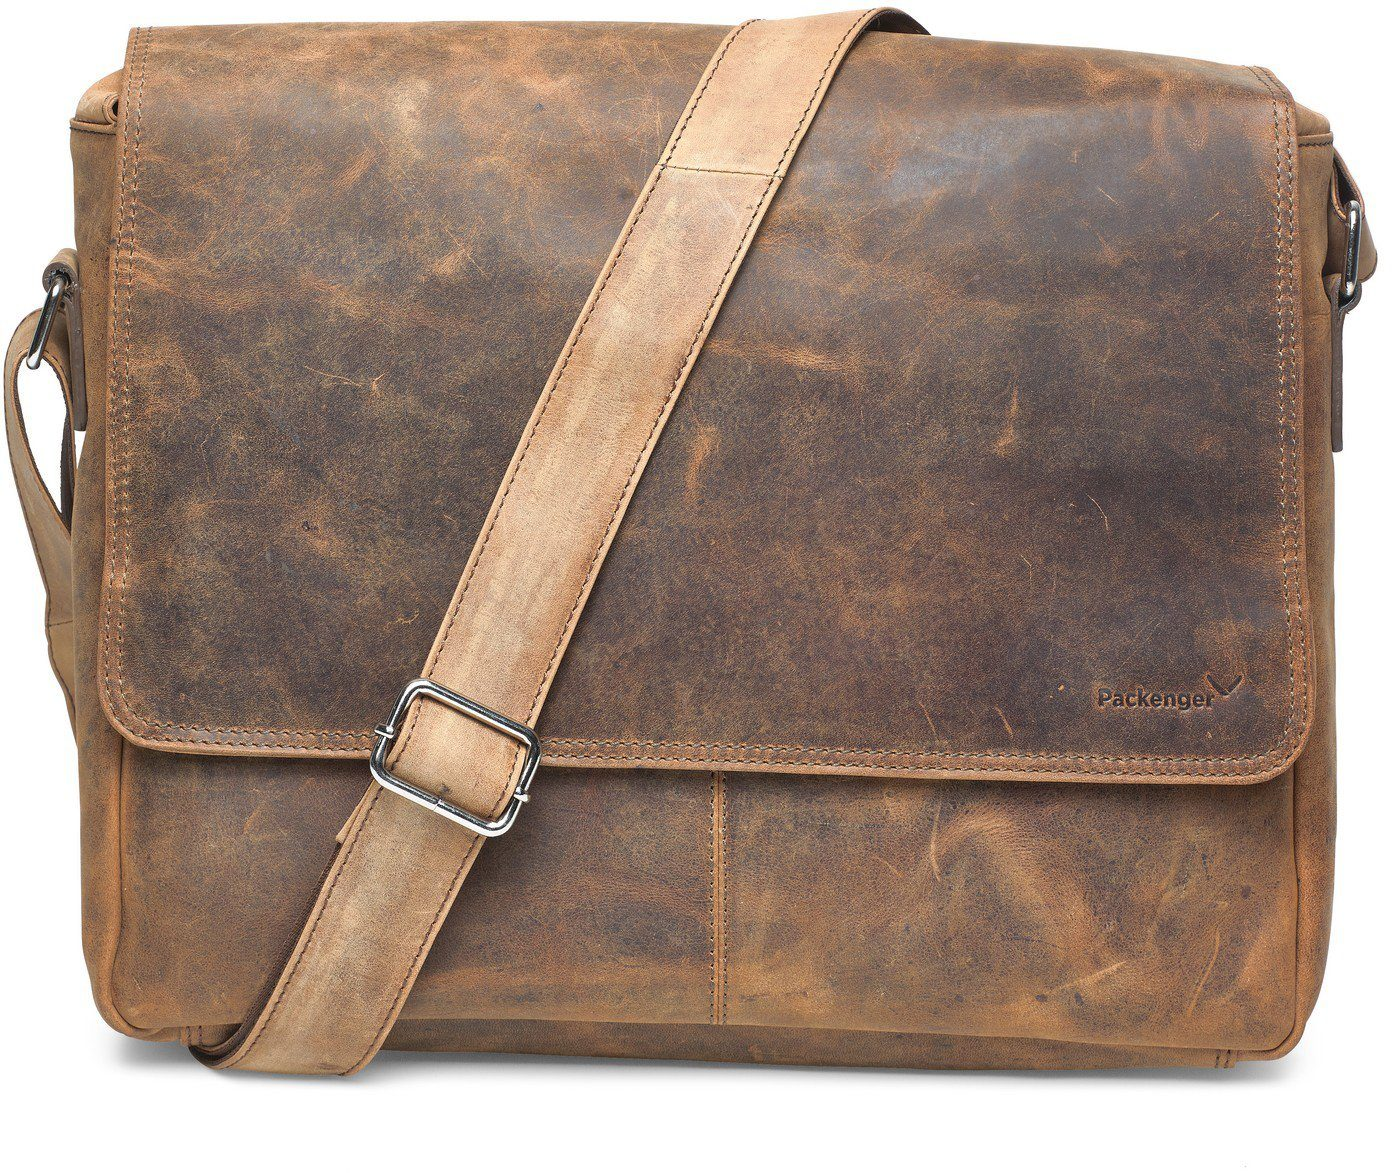 Packenger Messengerbag mit 15-Zoll Laptopfach, »Vethorn, vintage«